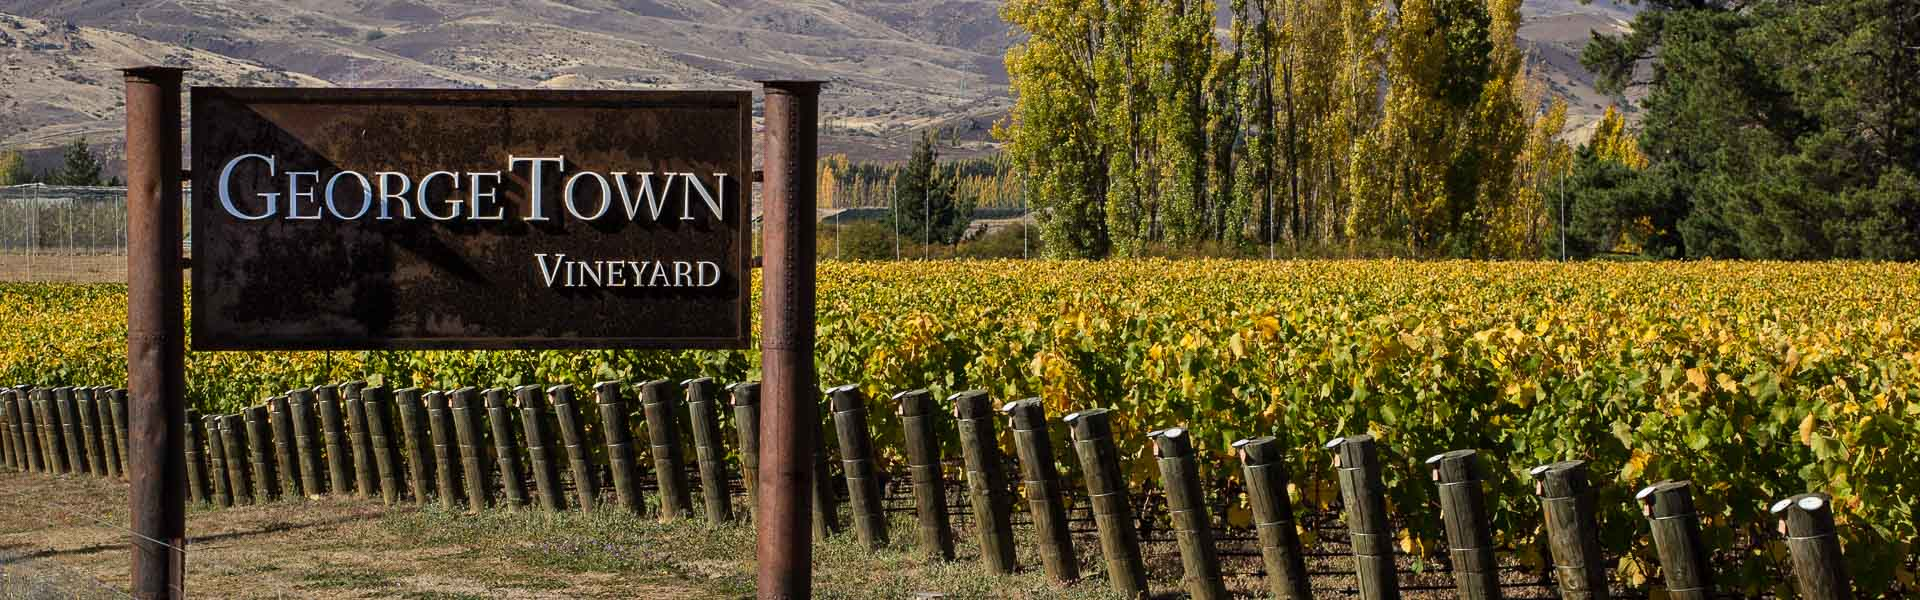 Arriving at Georgetown vineyard, Central Otago